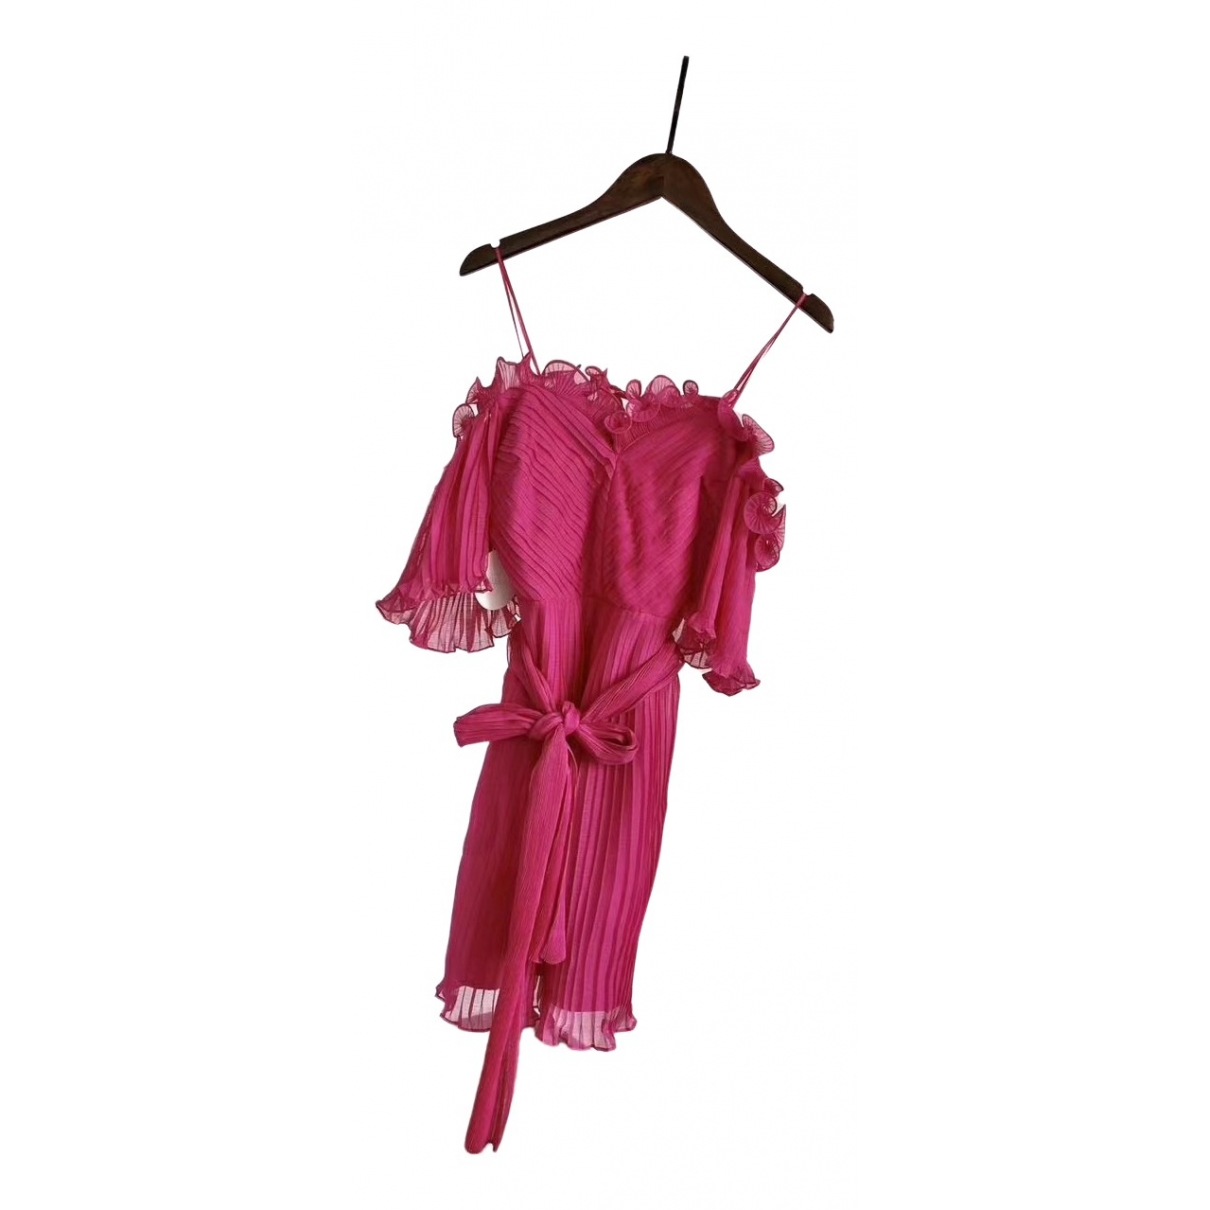 La Maison Talulah \N Pink dress for Women 38 FR